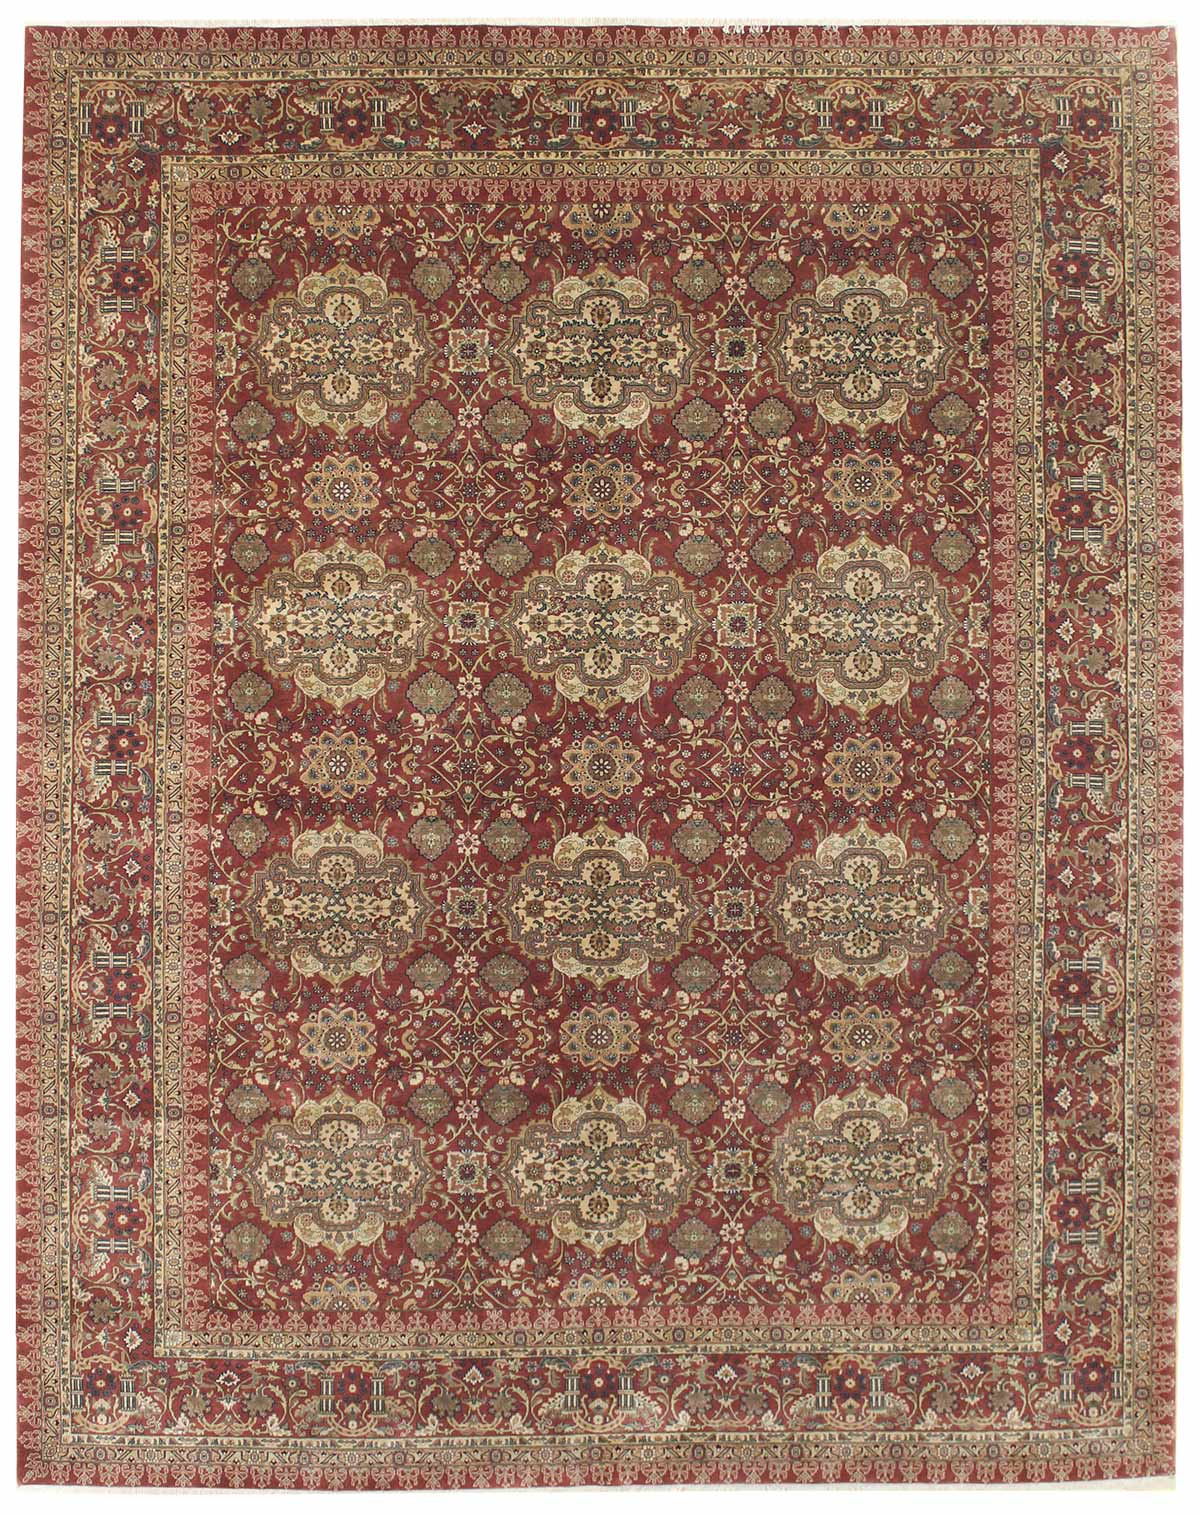 Motasham Handwoven Traditional Rug